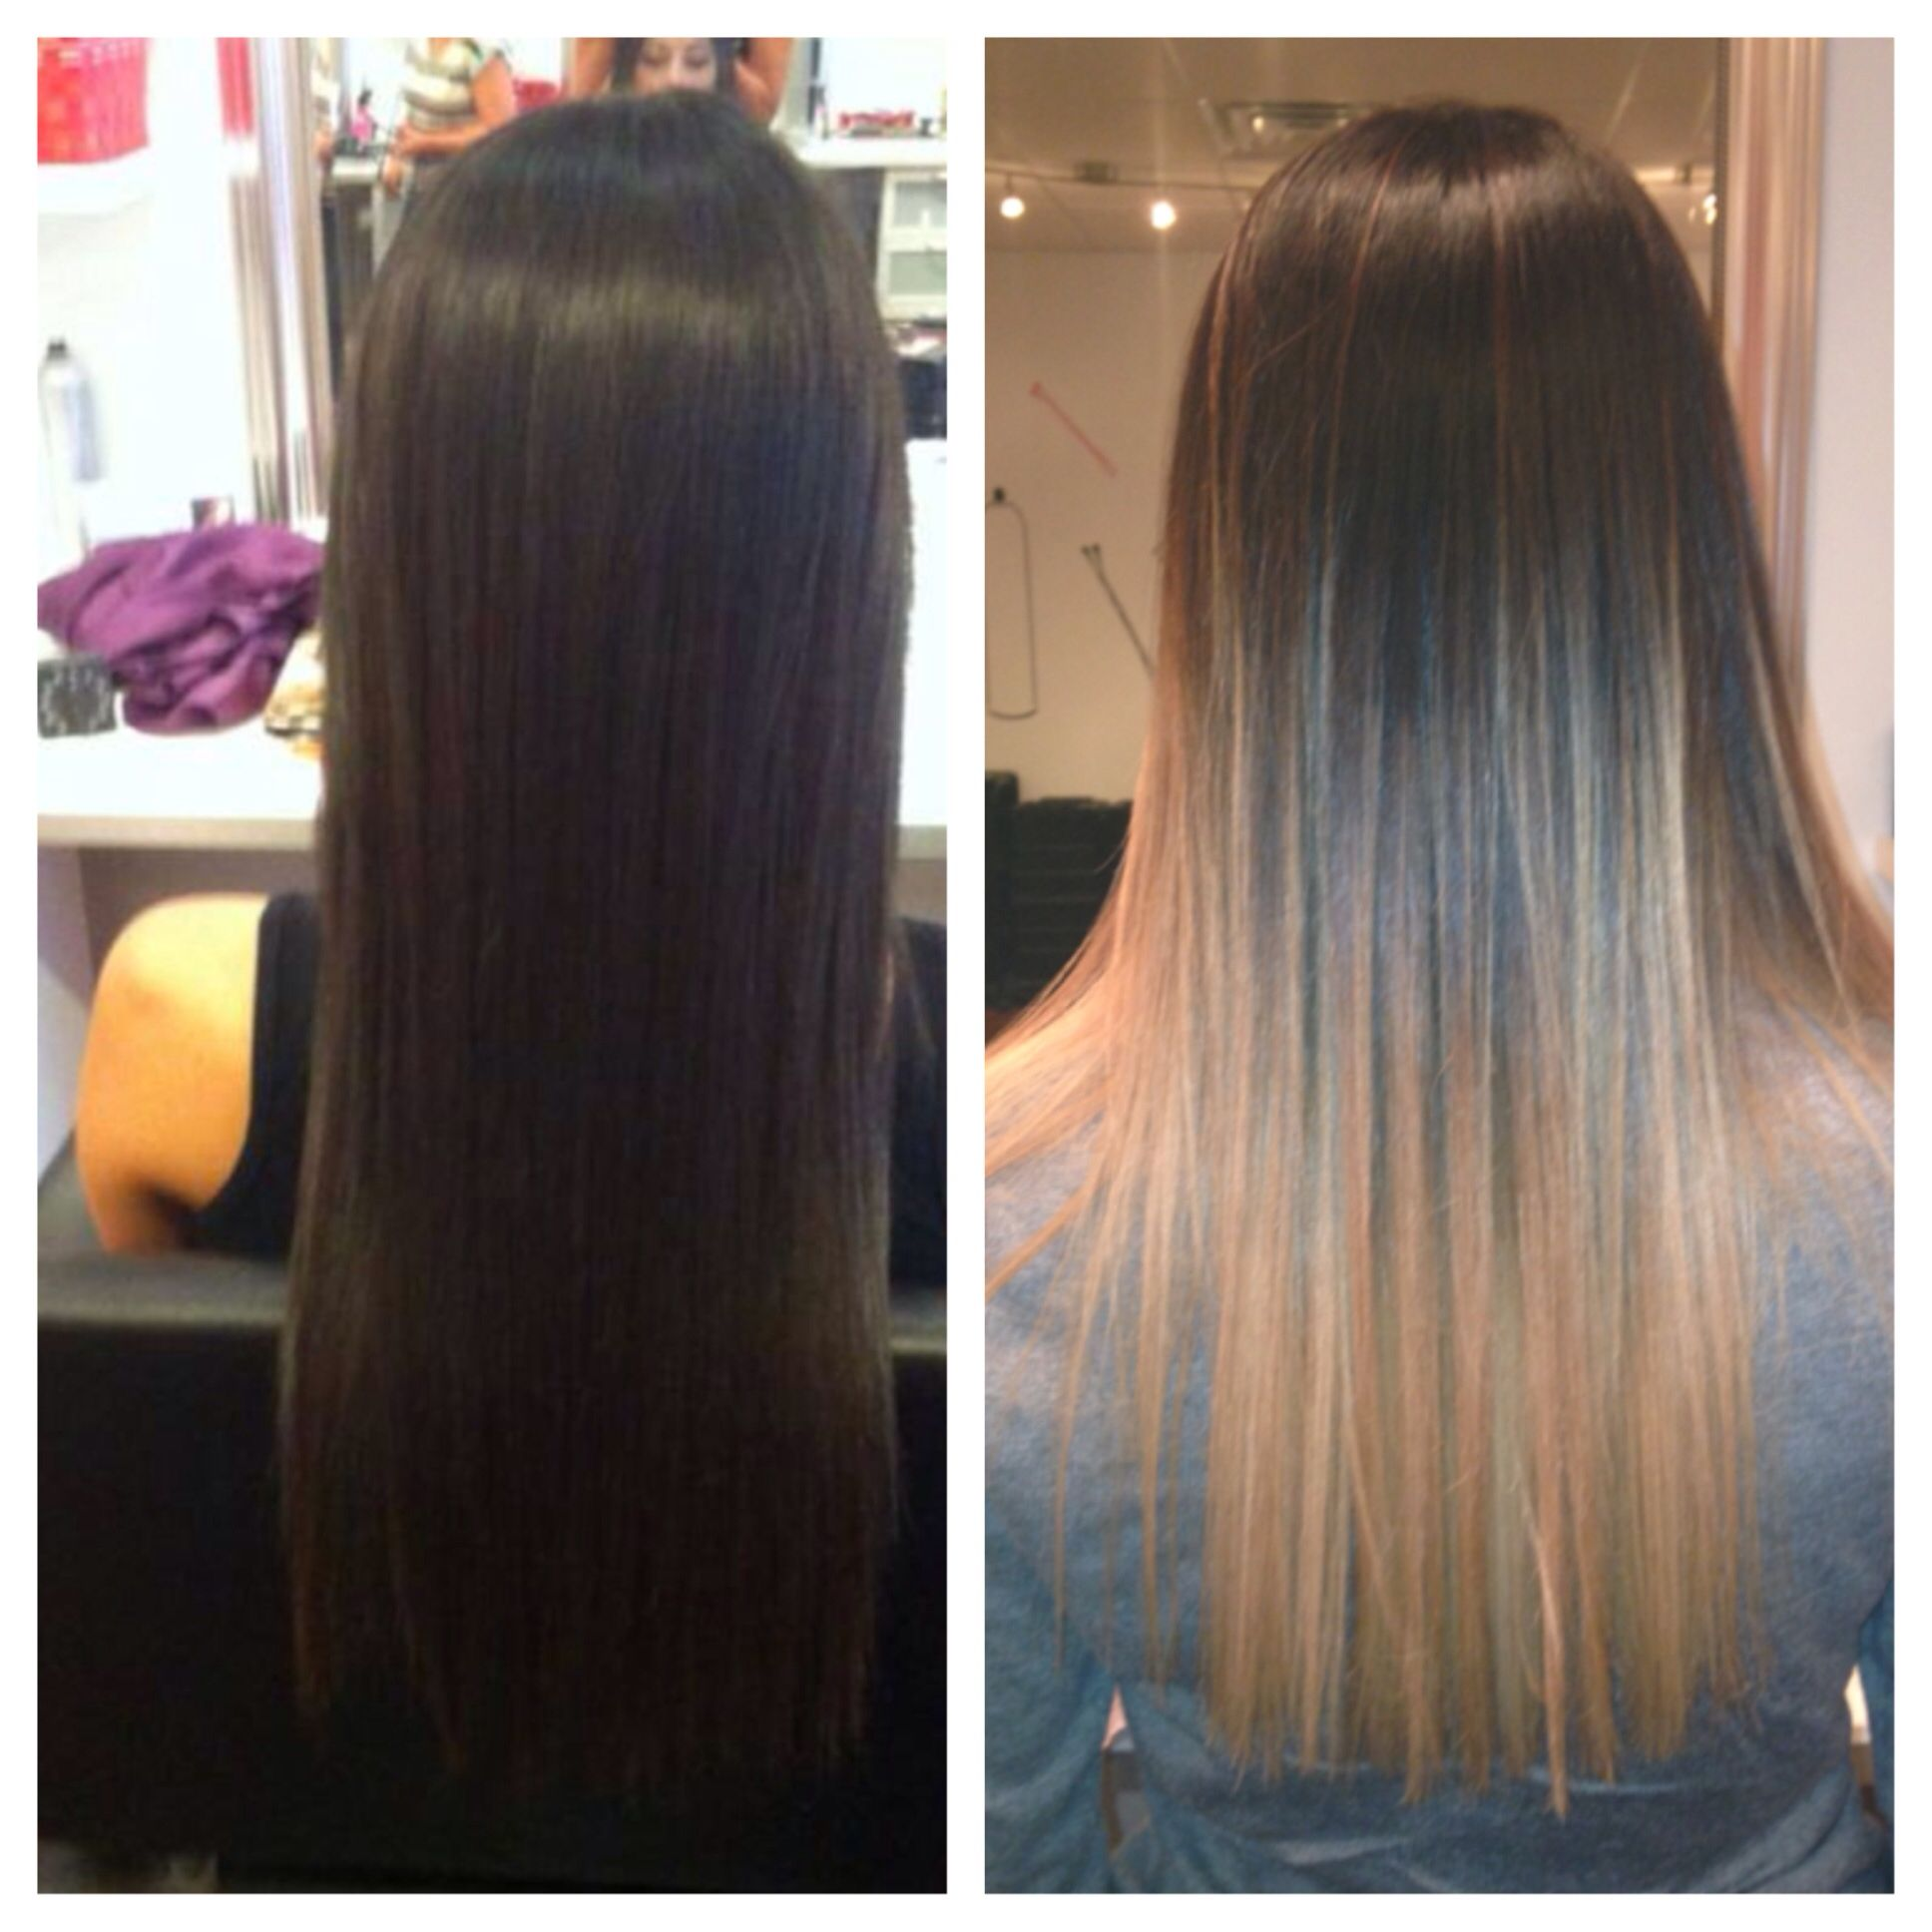 Pin By Delisa Reyes On This Is What I Do Hair Beauty Balayage Hair Hair Makeup